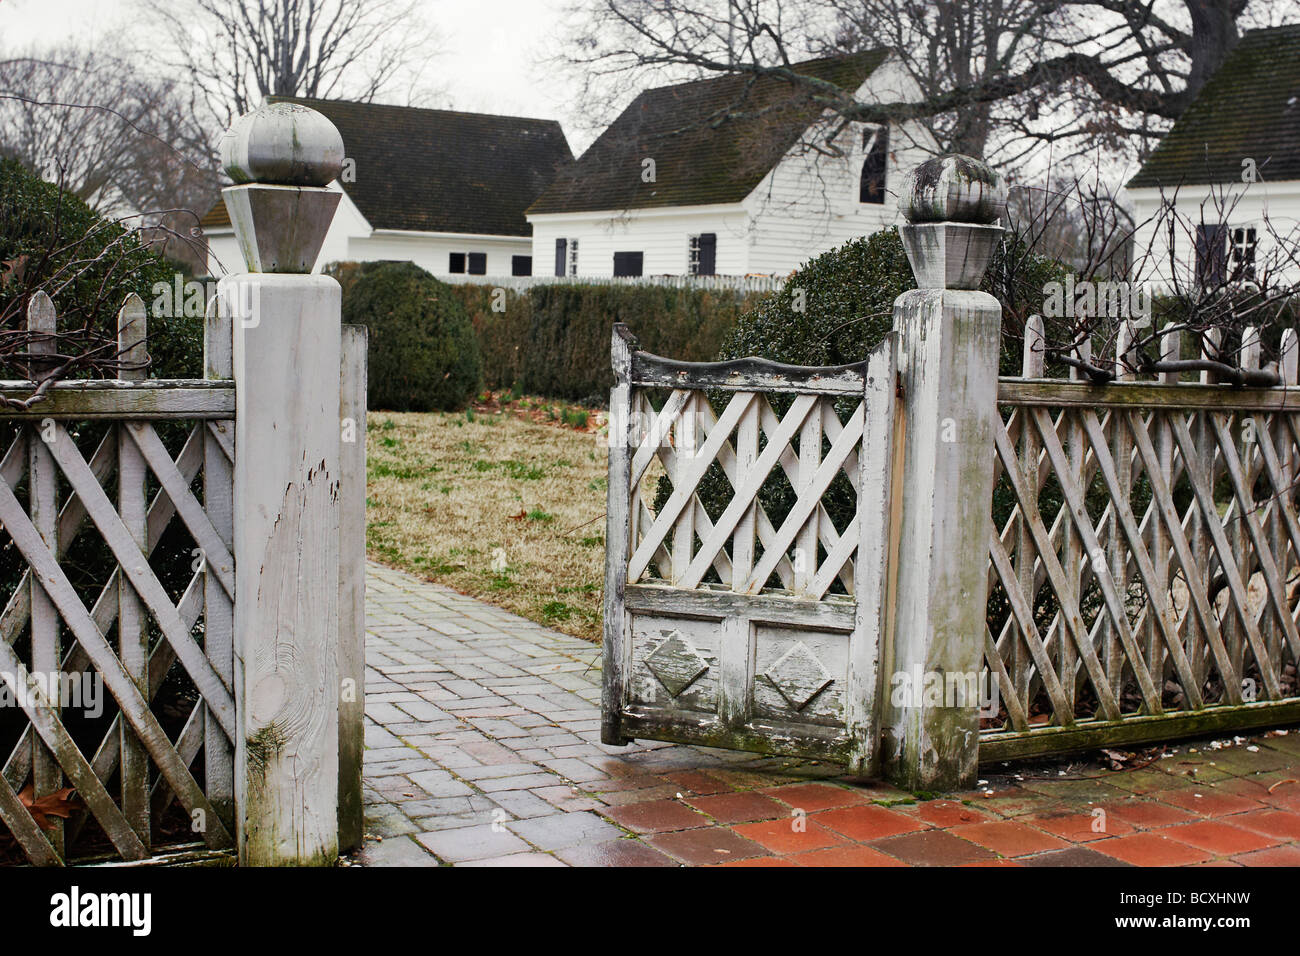 A Fence Gate And Brick Path In Colonial Williamsburg